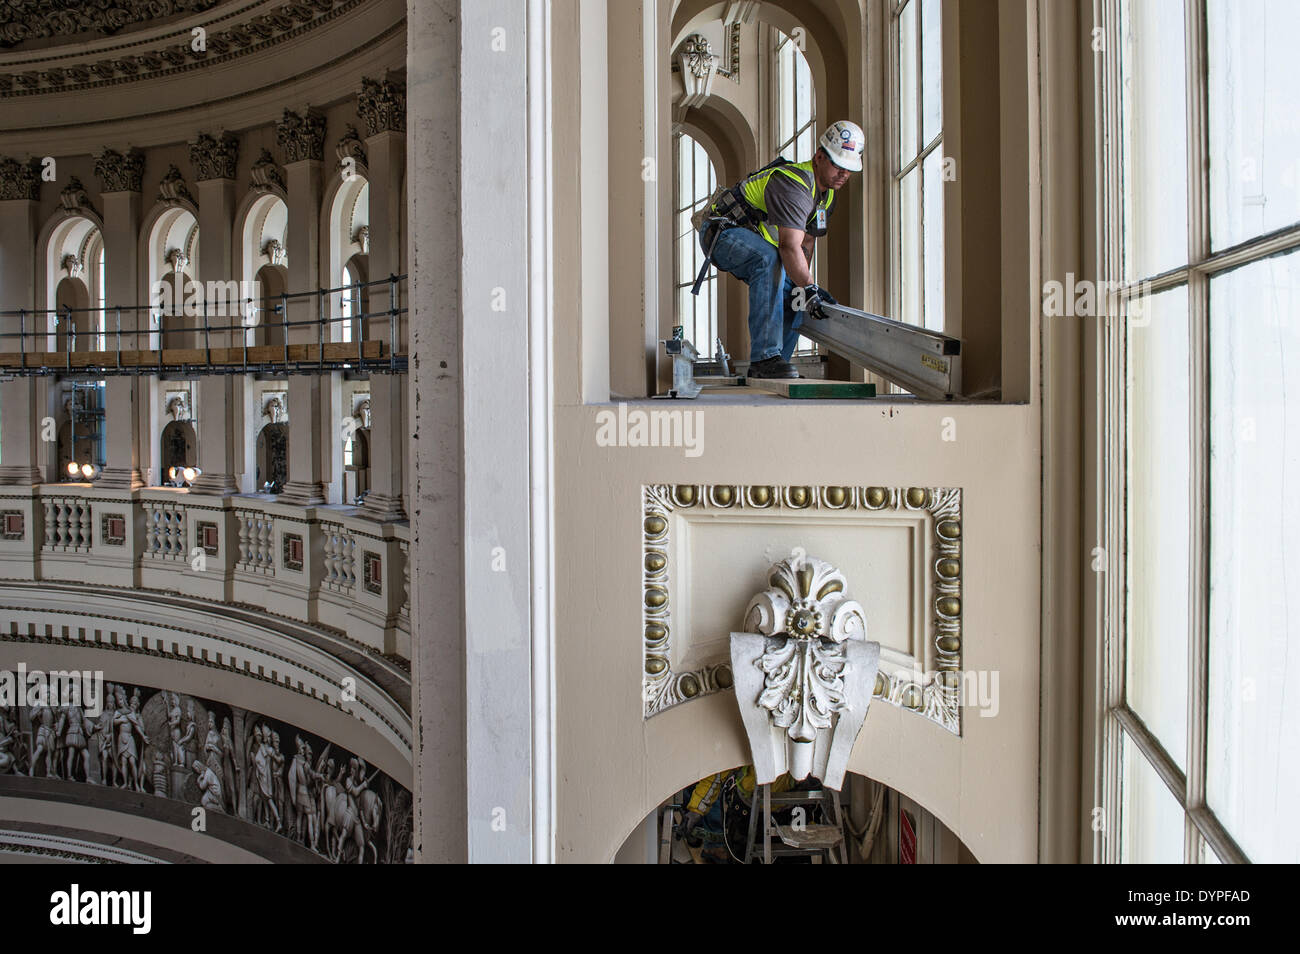 Workers create a scaffold to support a protective canopy inside the Rotunda during the restoration of the US Capitol Dome April 23, 2014 in Washington, DC. The $60 million dollar project is to stop the deterioration of the cast iron dome and preserve it for the future. - Stock Image